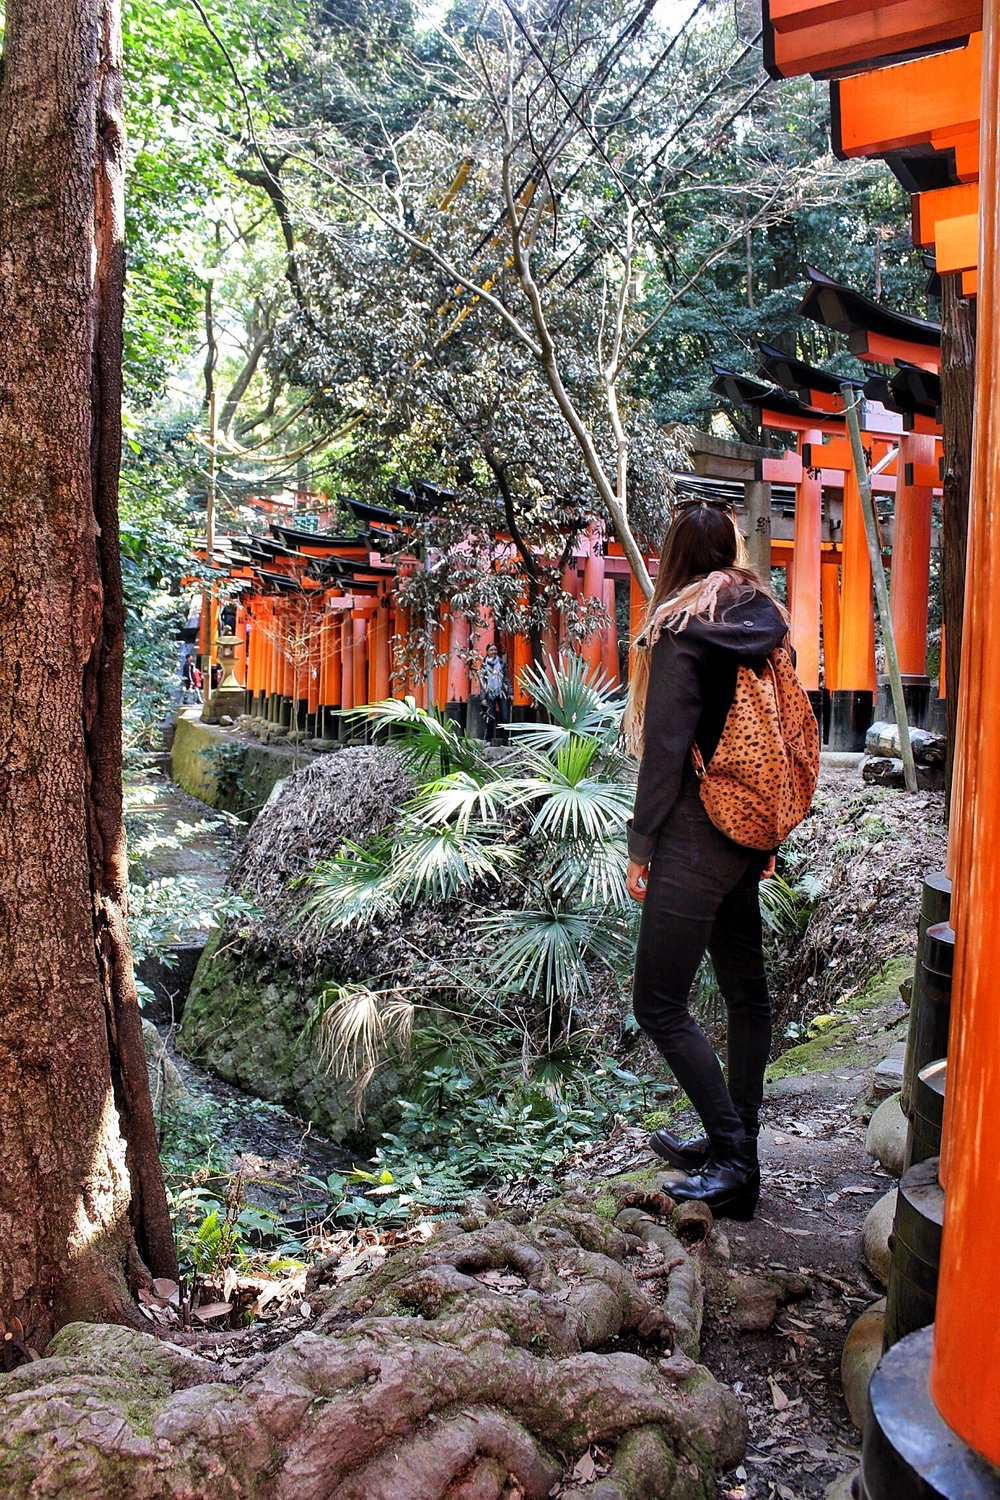 Exploring the  Fushimi Inari-Taisha Shrine  in Kyoto.